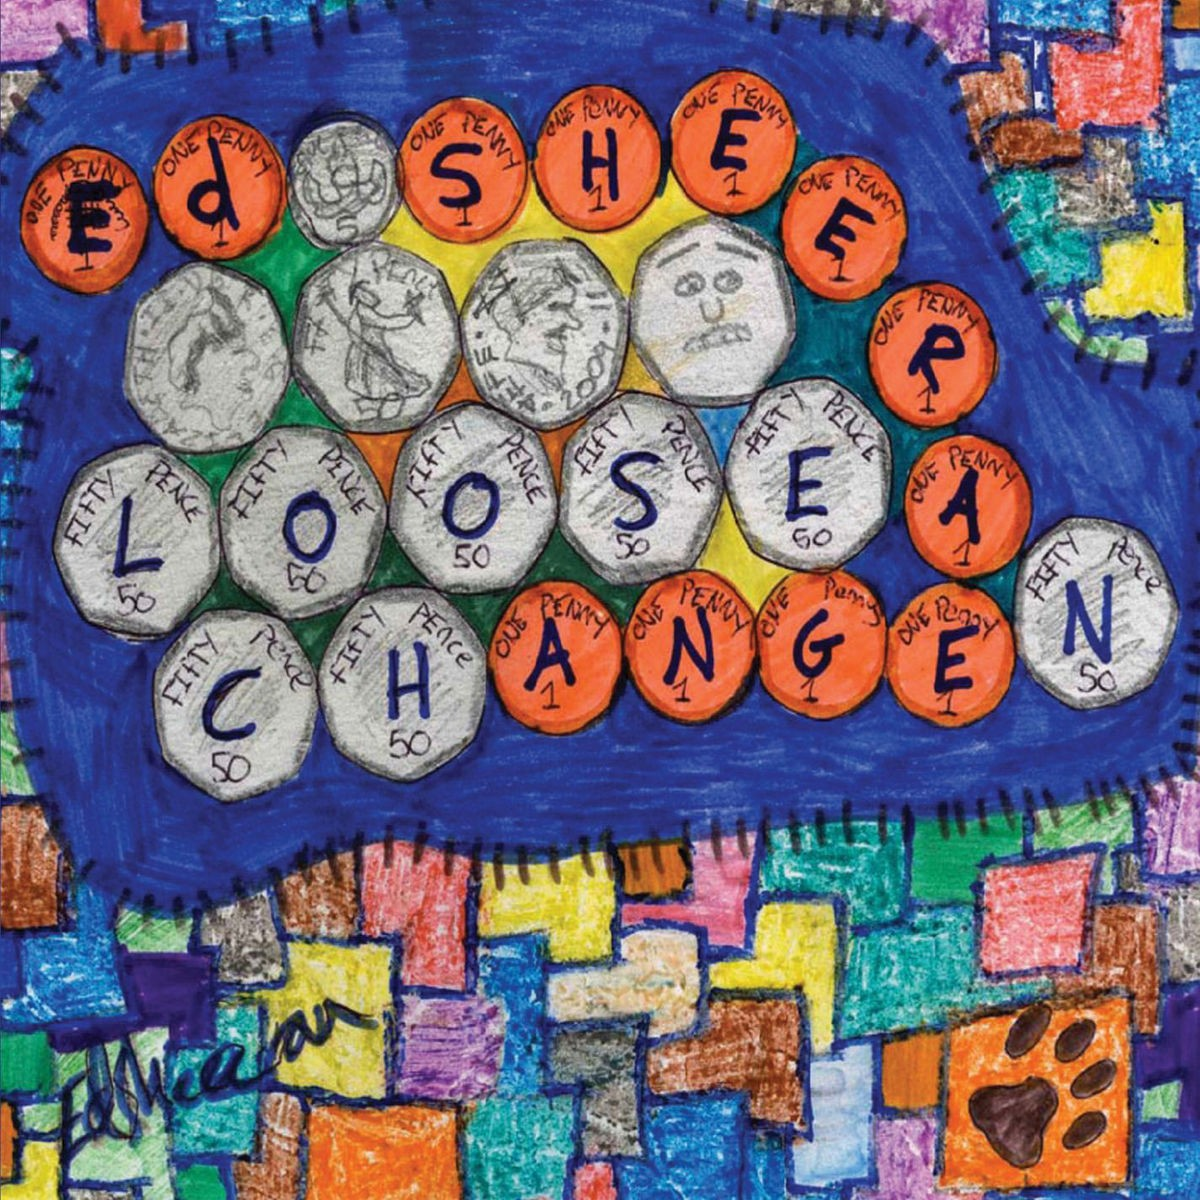 Ed Sheeran - Loose Change VINYL - 2564605245